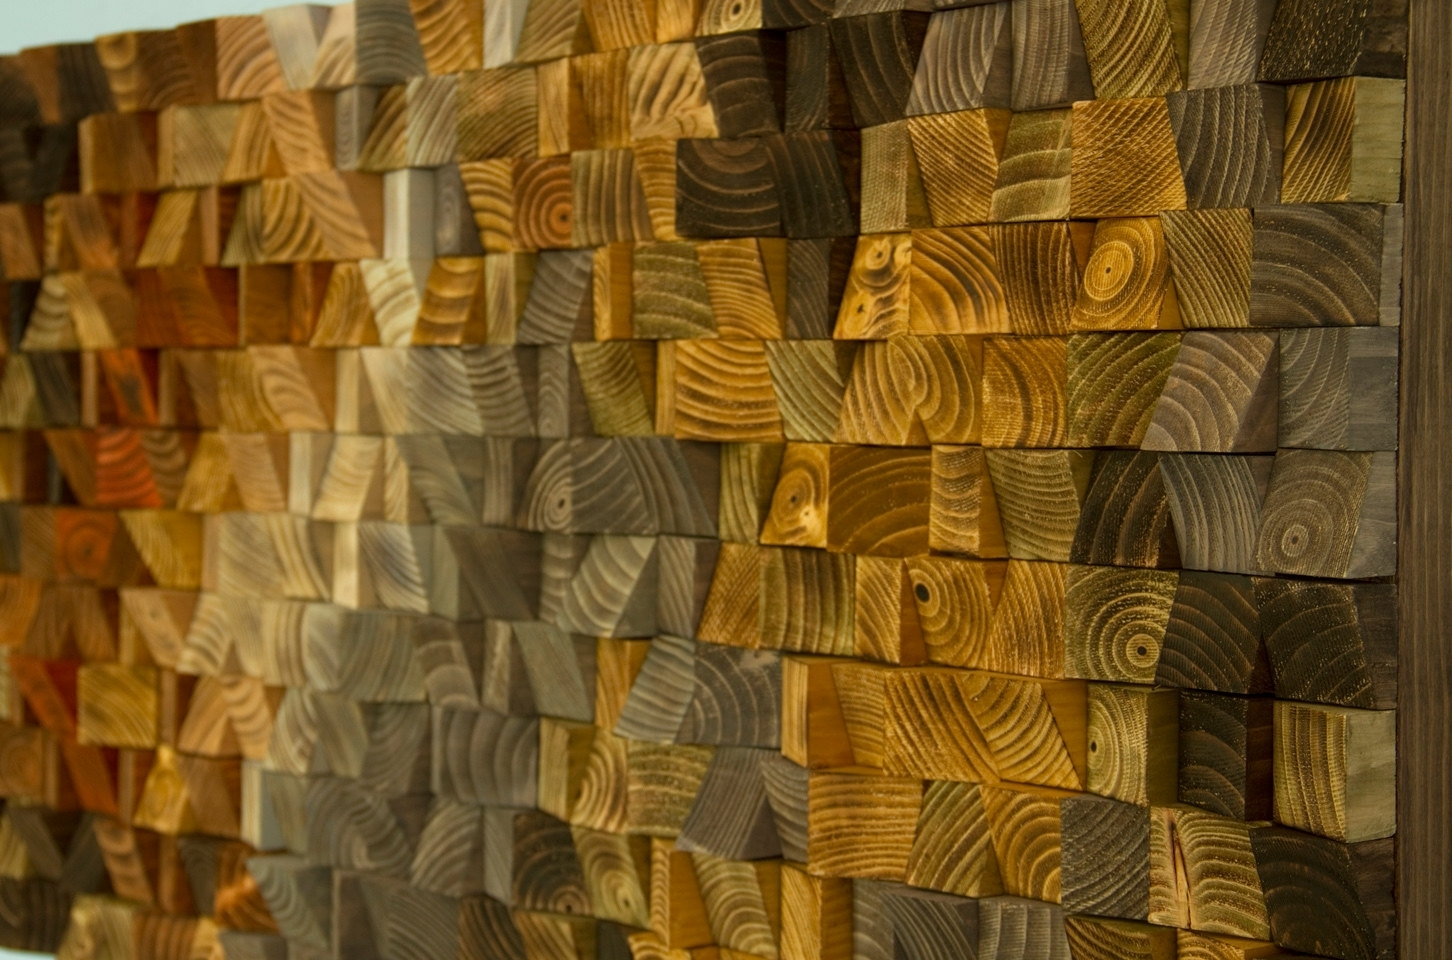 Rustic Wood Wall Art, Wood Wall Sculpture, Abstract Wood Art Mosaic Intended For Most Recently Released Abstract Mosaic Art On Wall (Gallery 3 of 20)